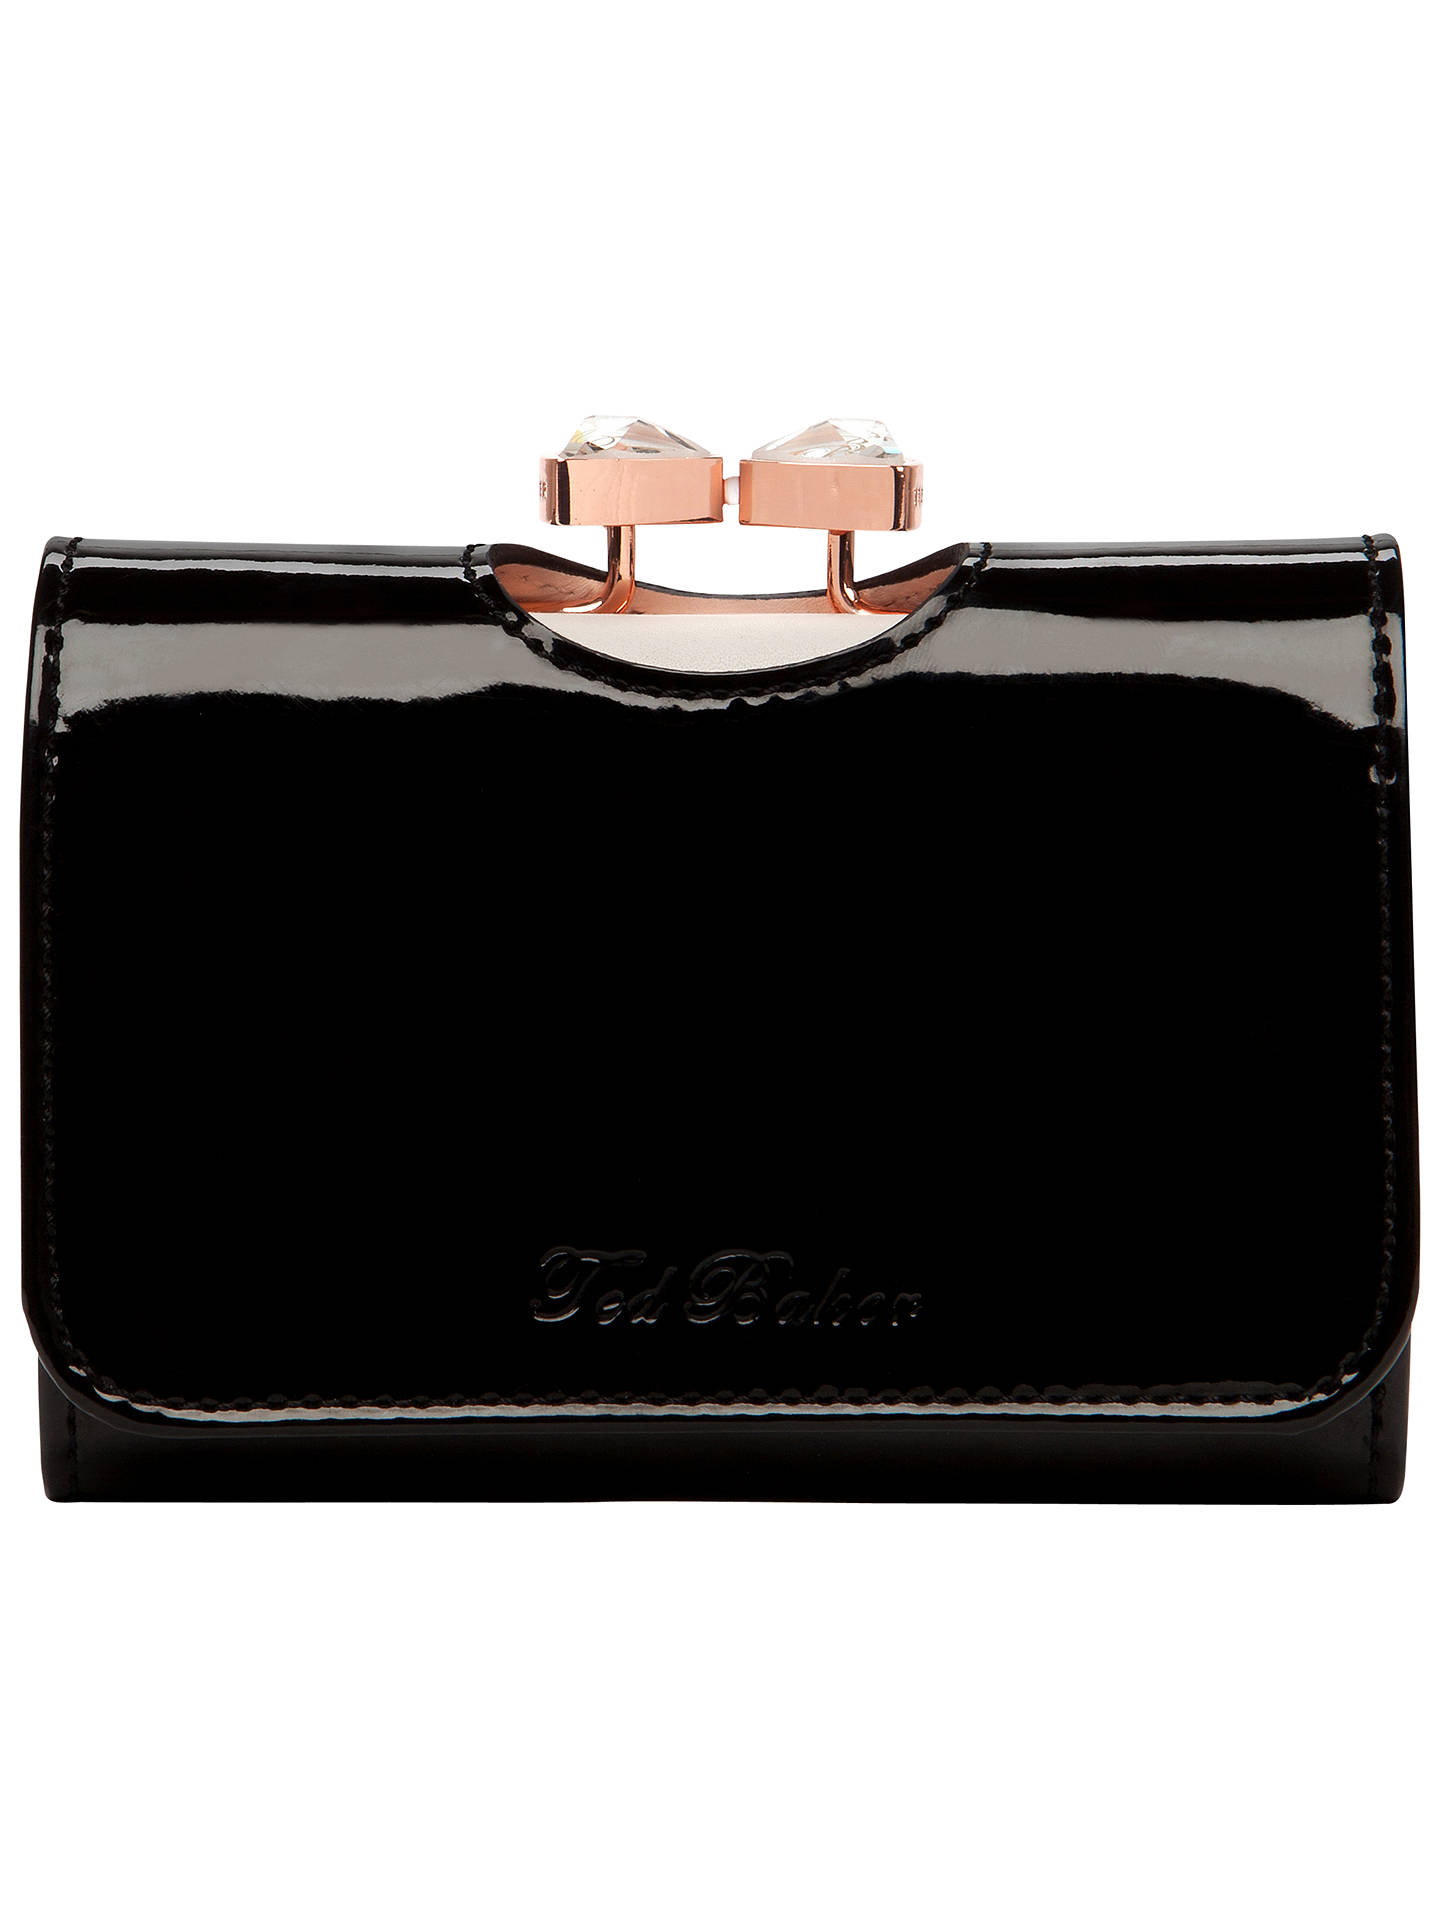 21f99998dbbd Ted Baker Tyro Crystal Bow Bobble Patent Small Purse at John Lewis ...